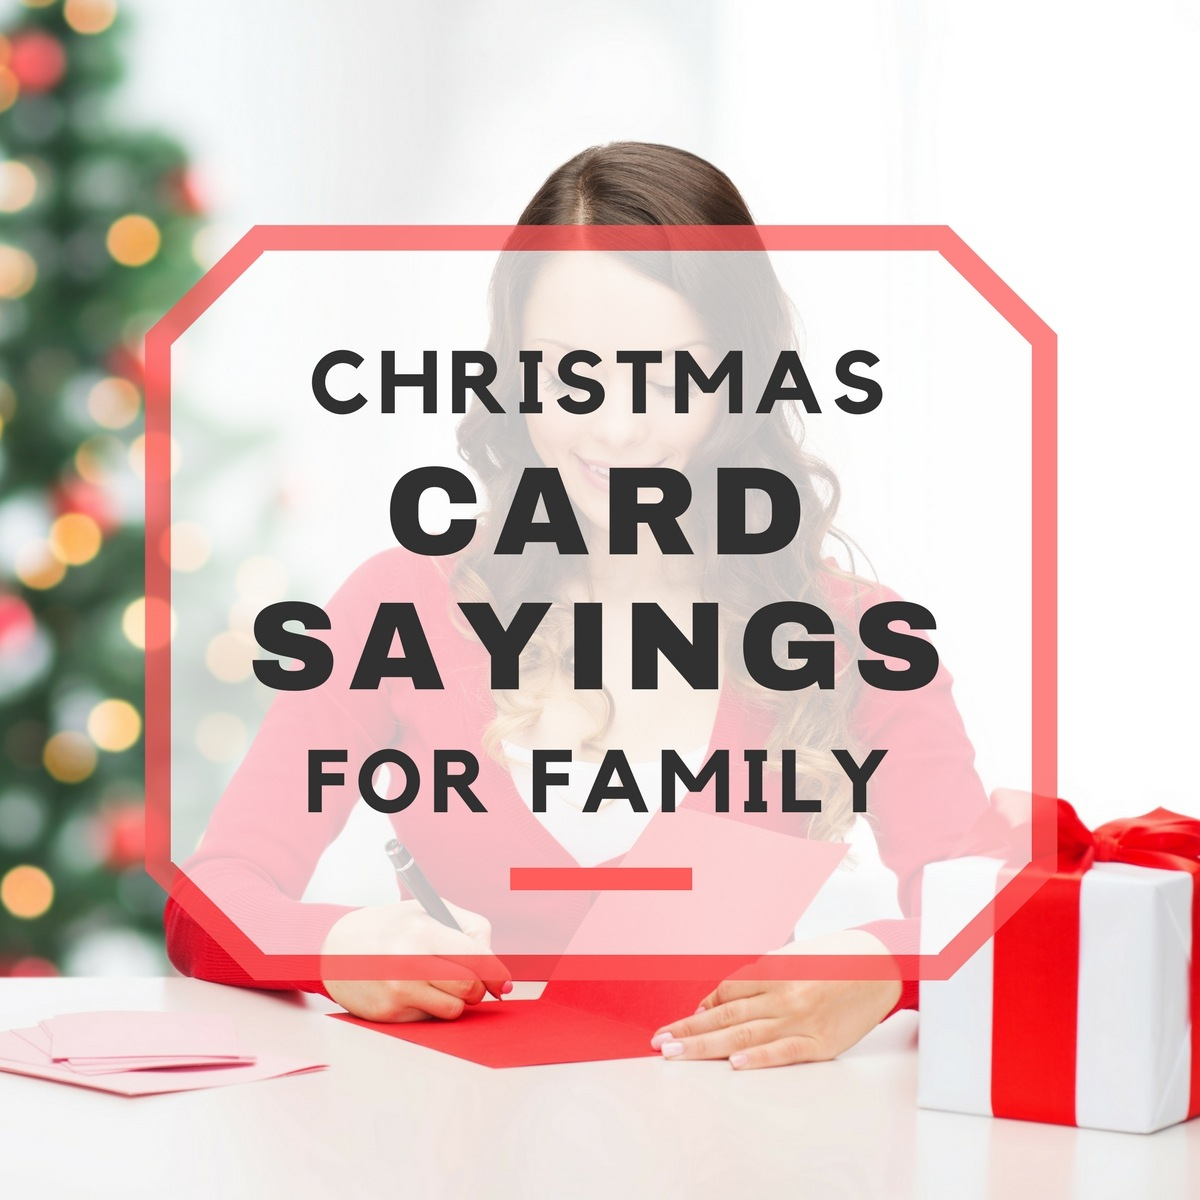 25 Christmas Card Sayings for Family